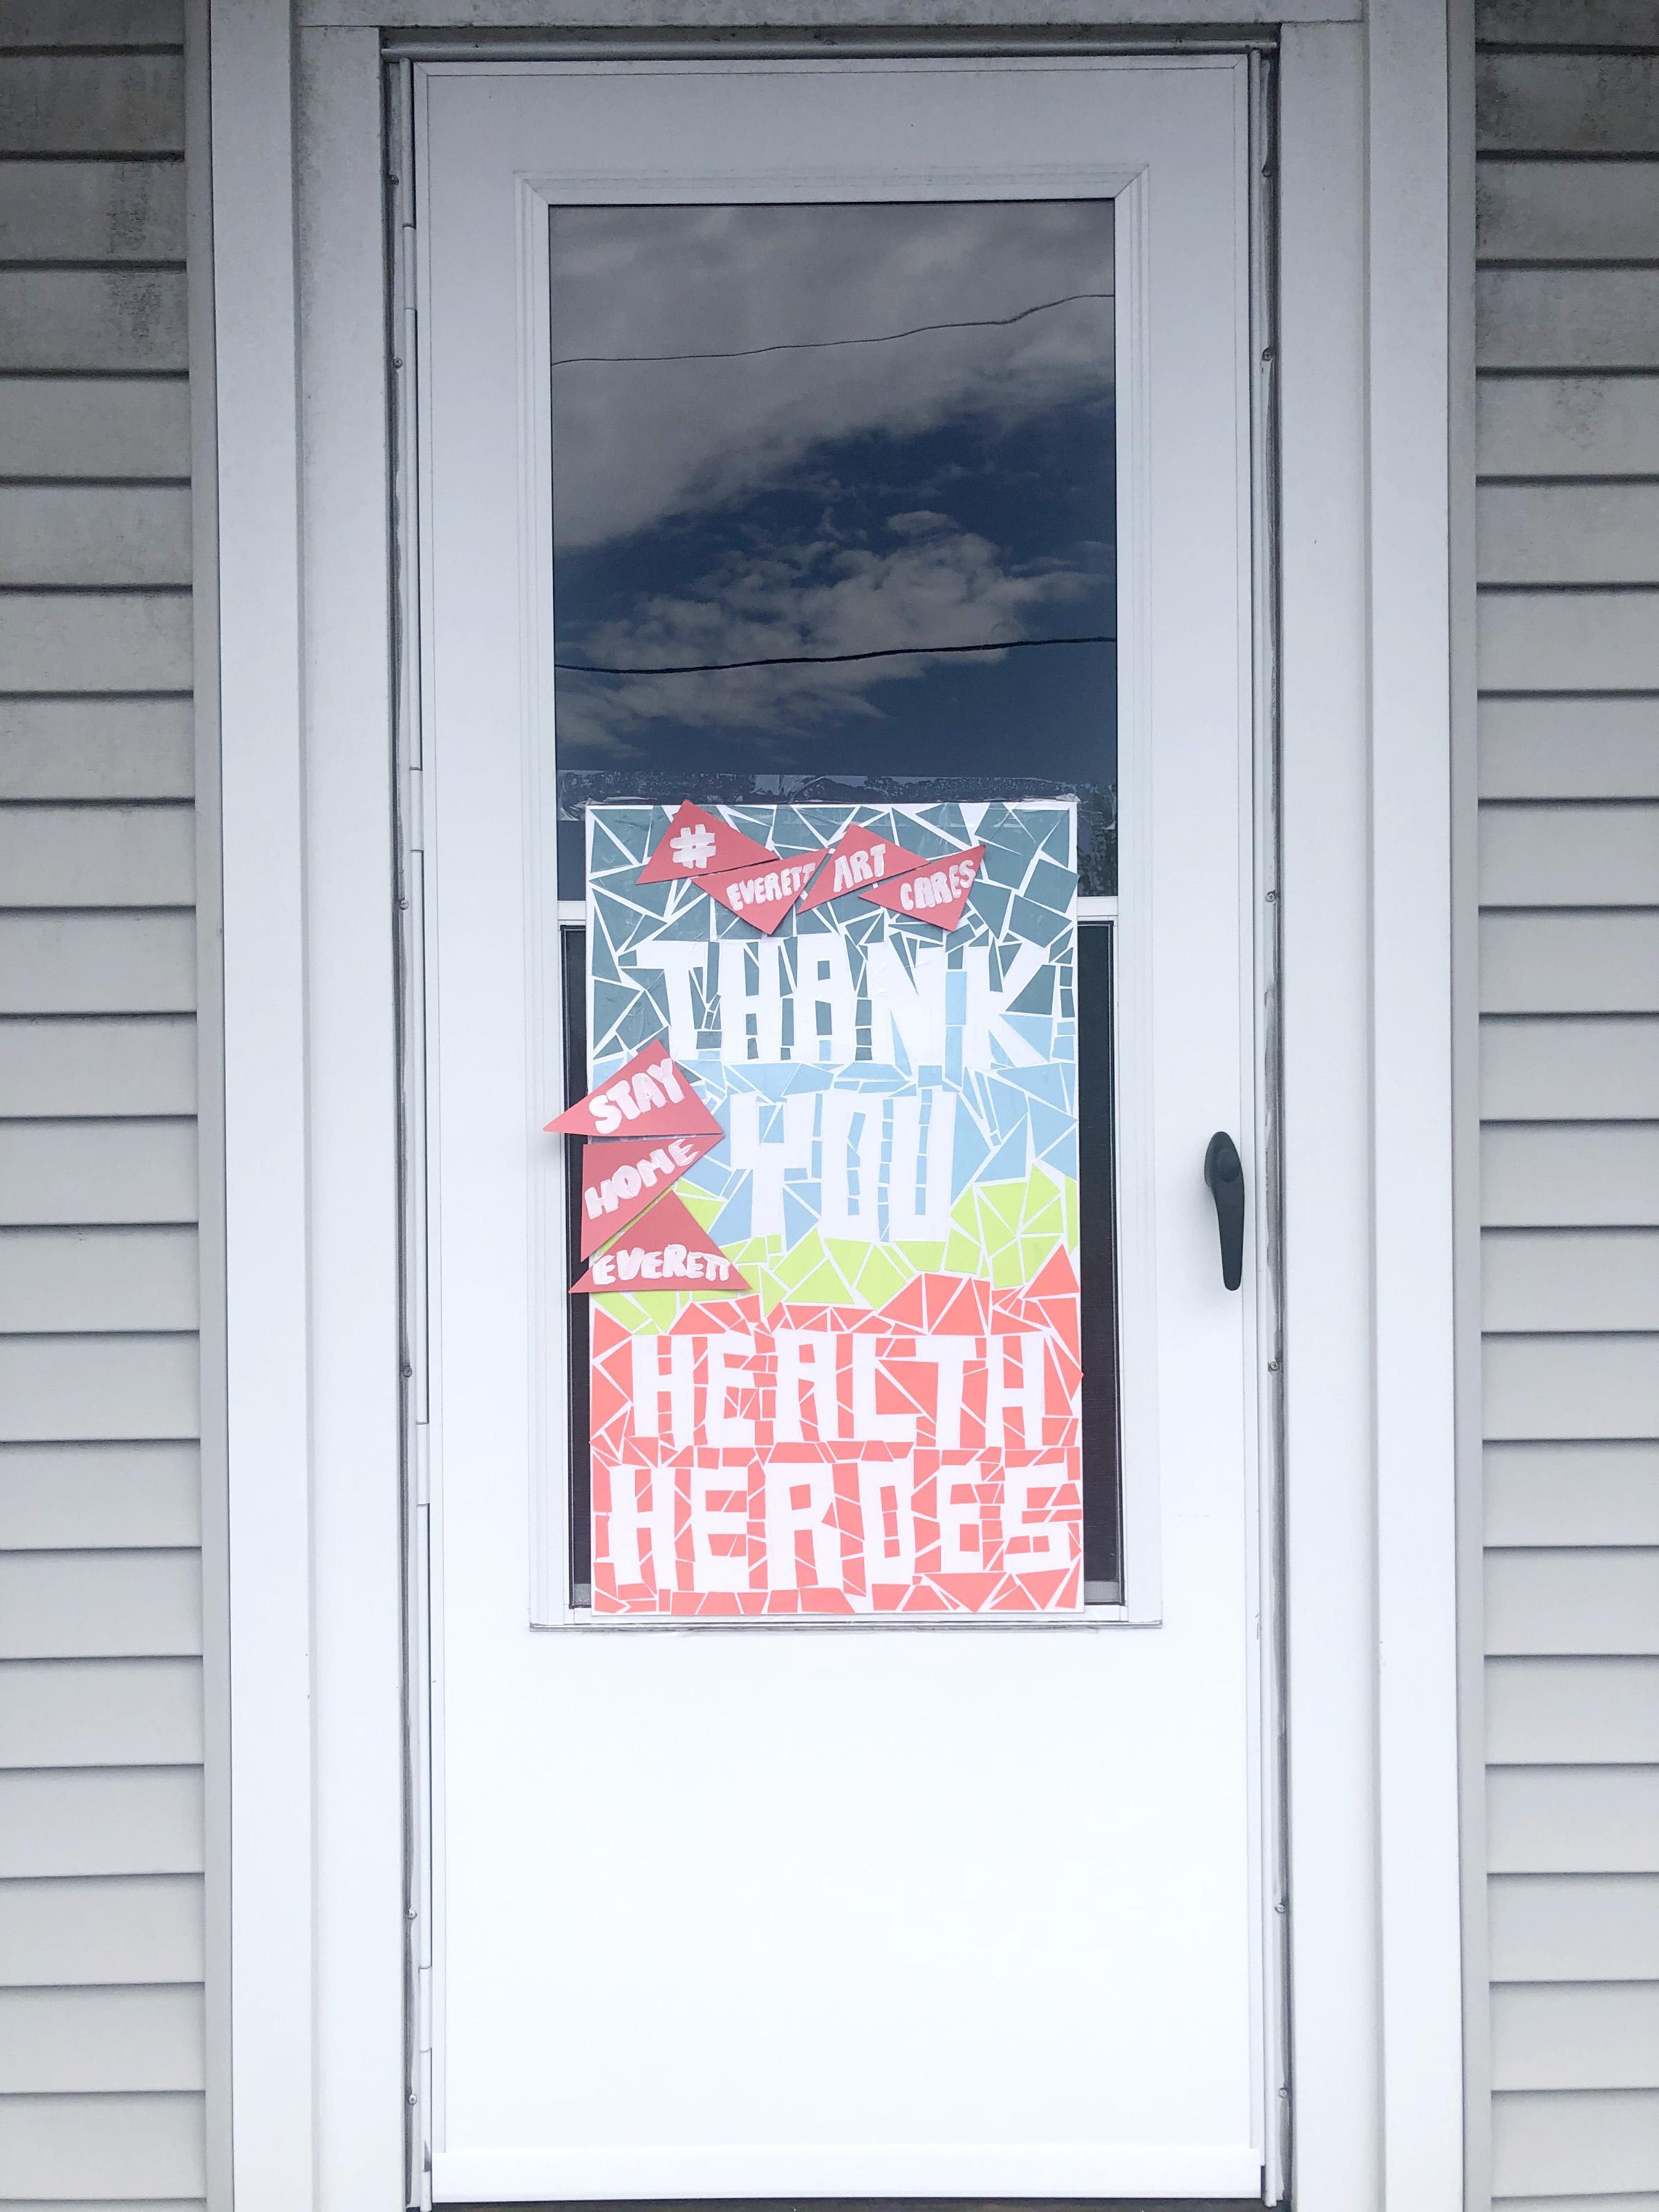 A sign on a door thanking our 'health heroes'